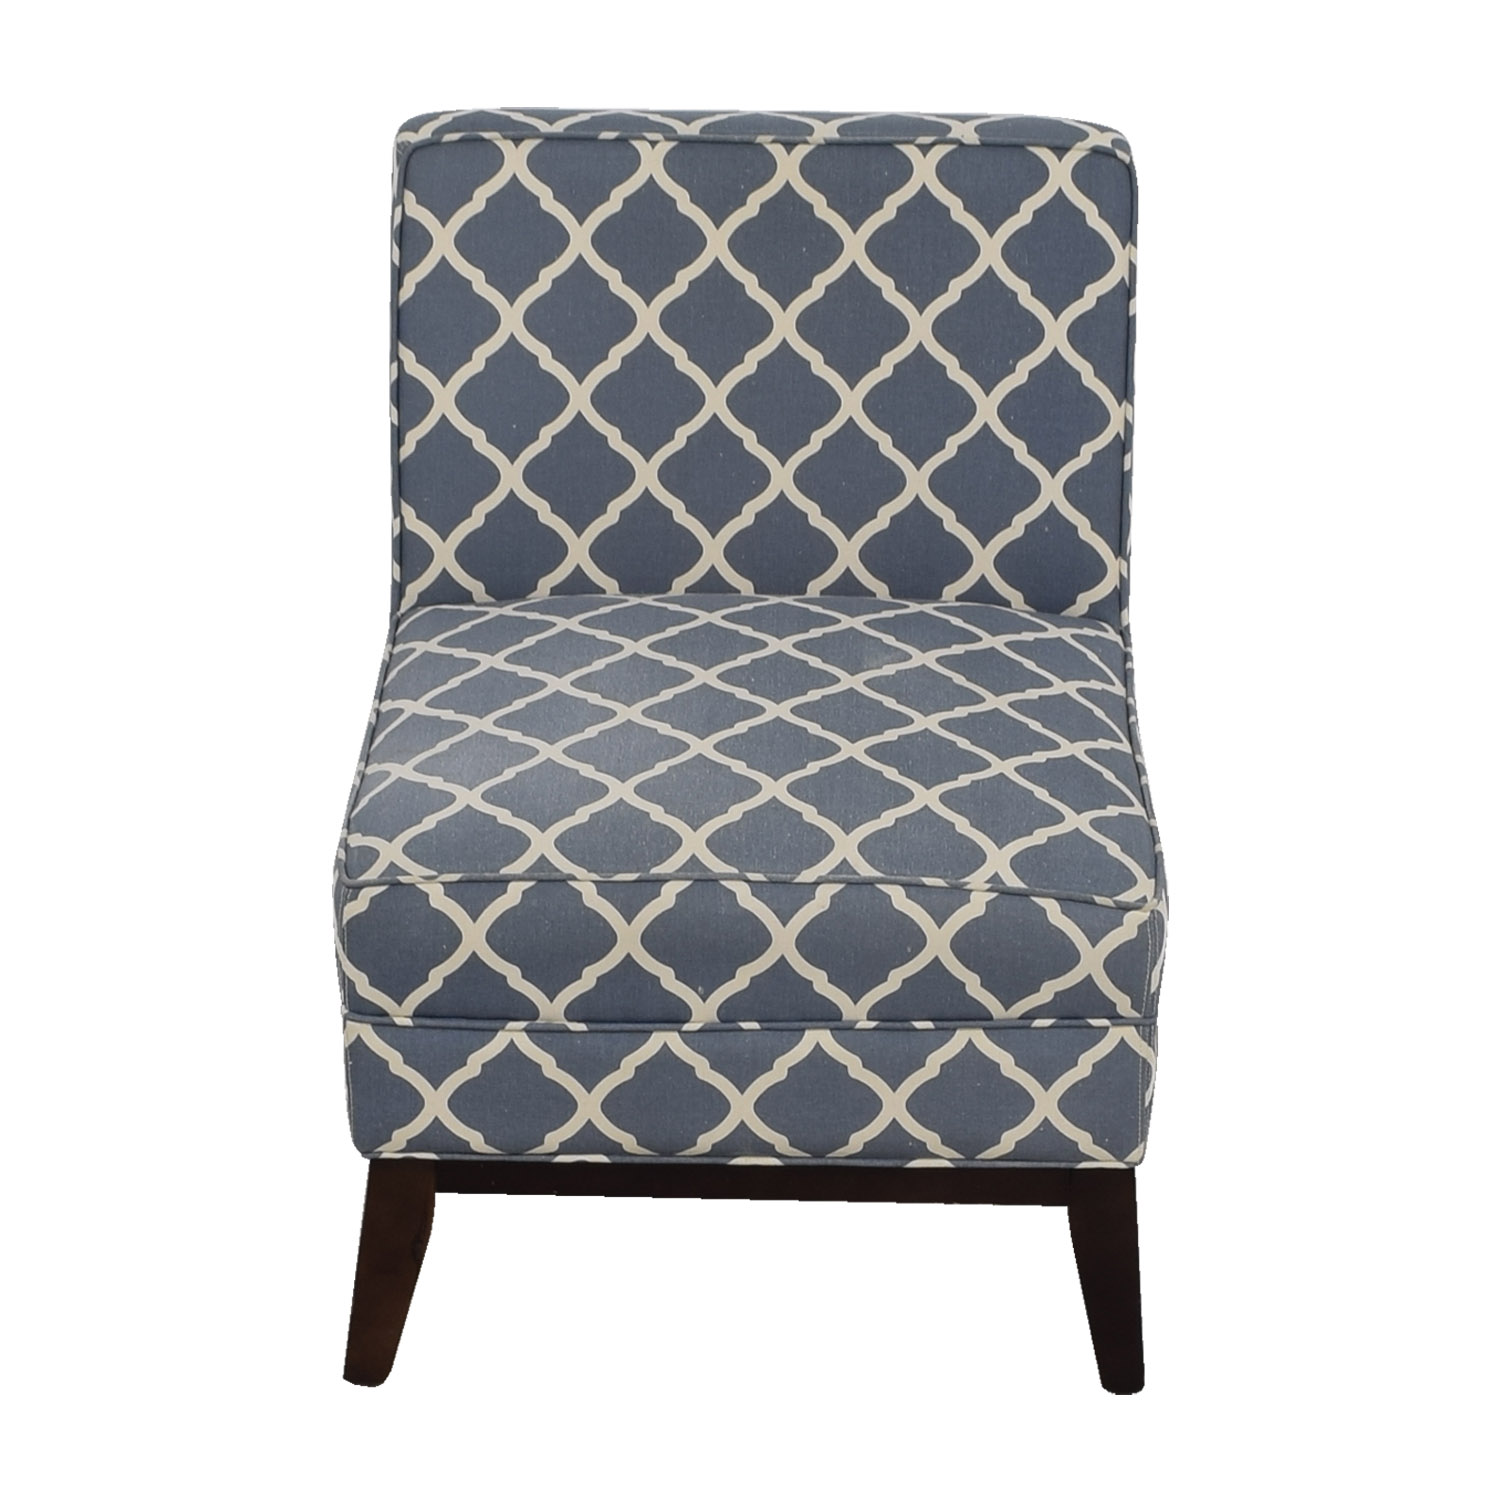 Joss and Main Joss and Main Blue and White Accent Chair nyc